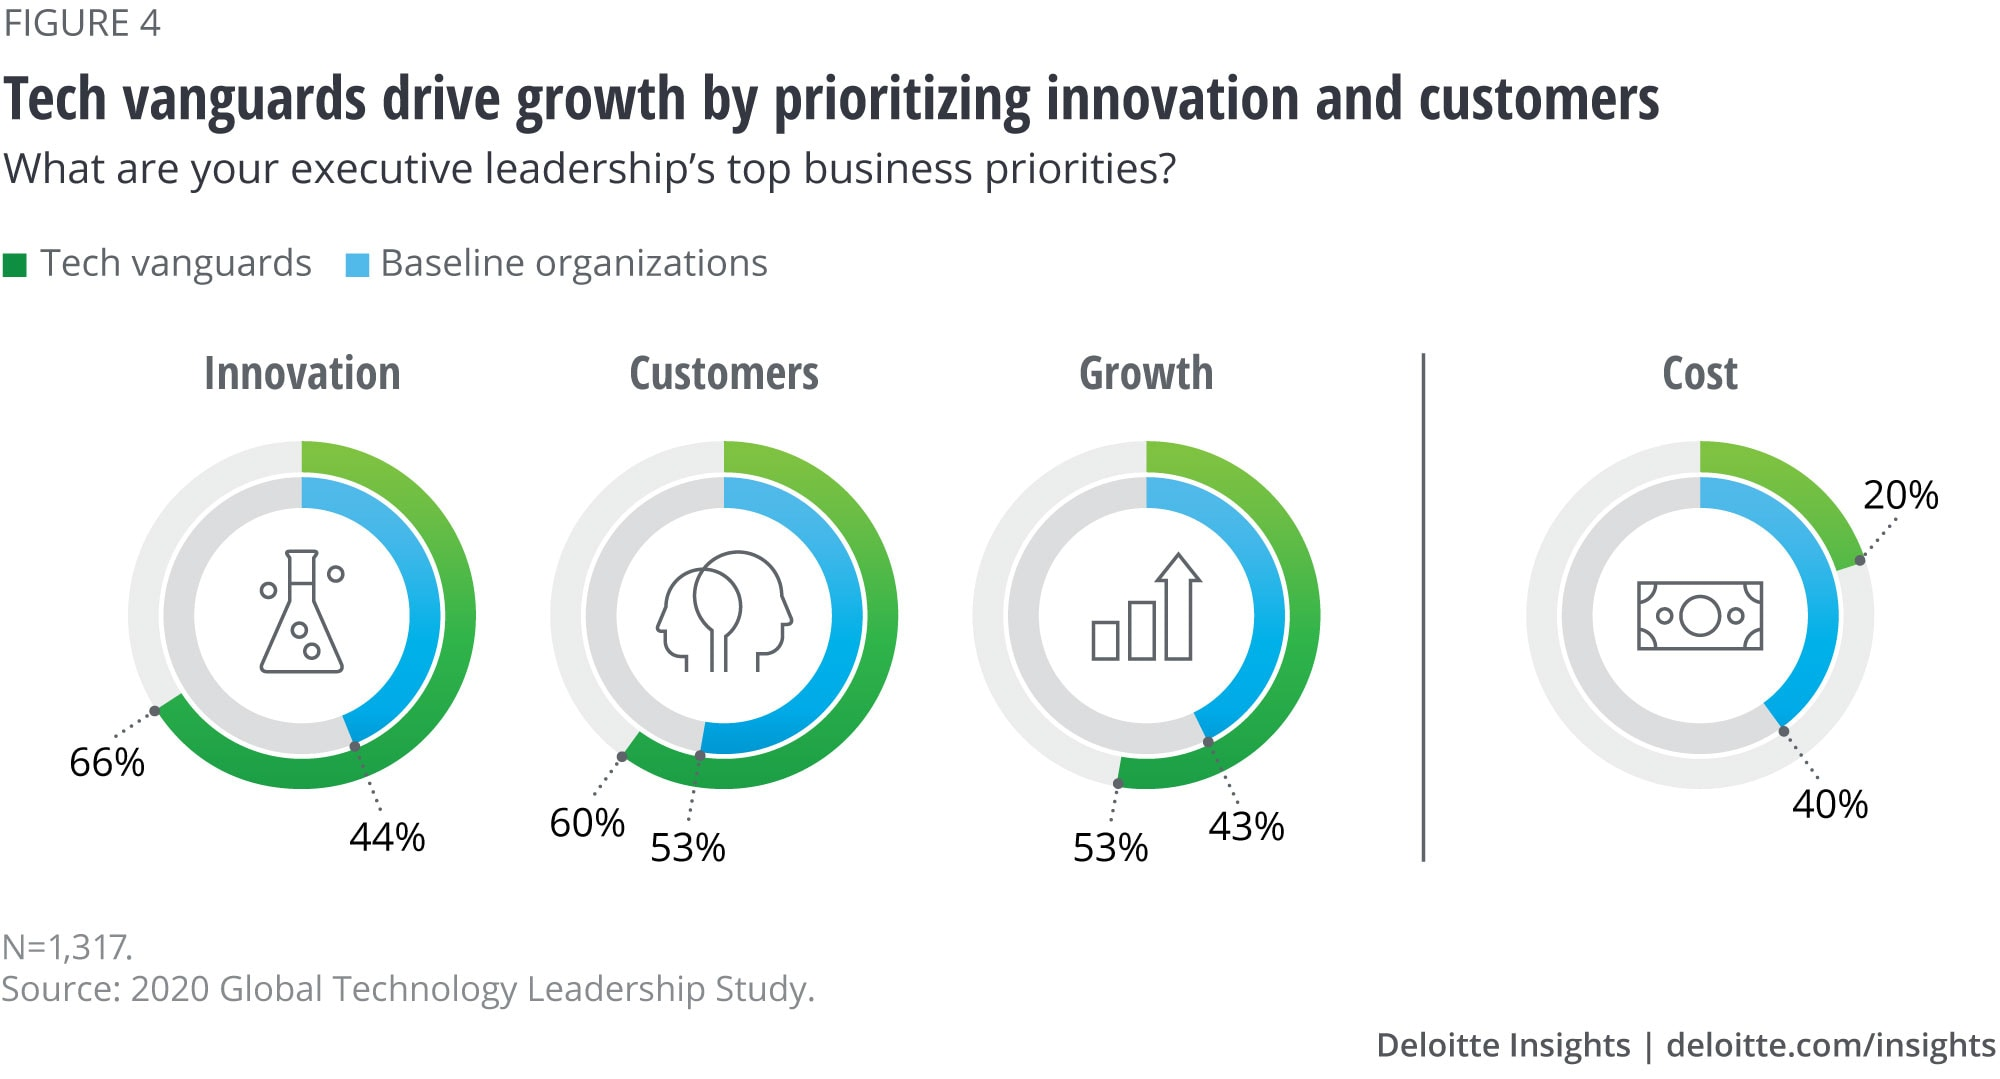 Tech vanguards drive growth by prioritizing innovation and customers